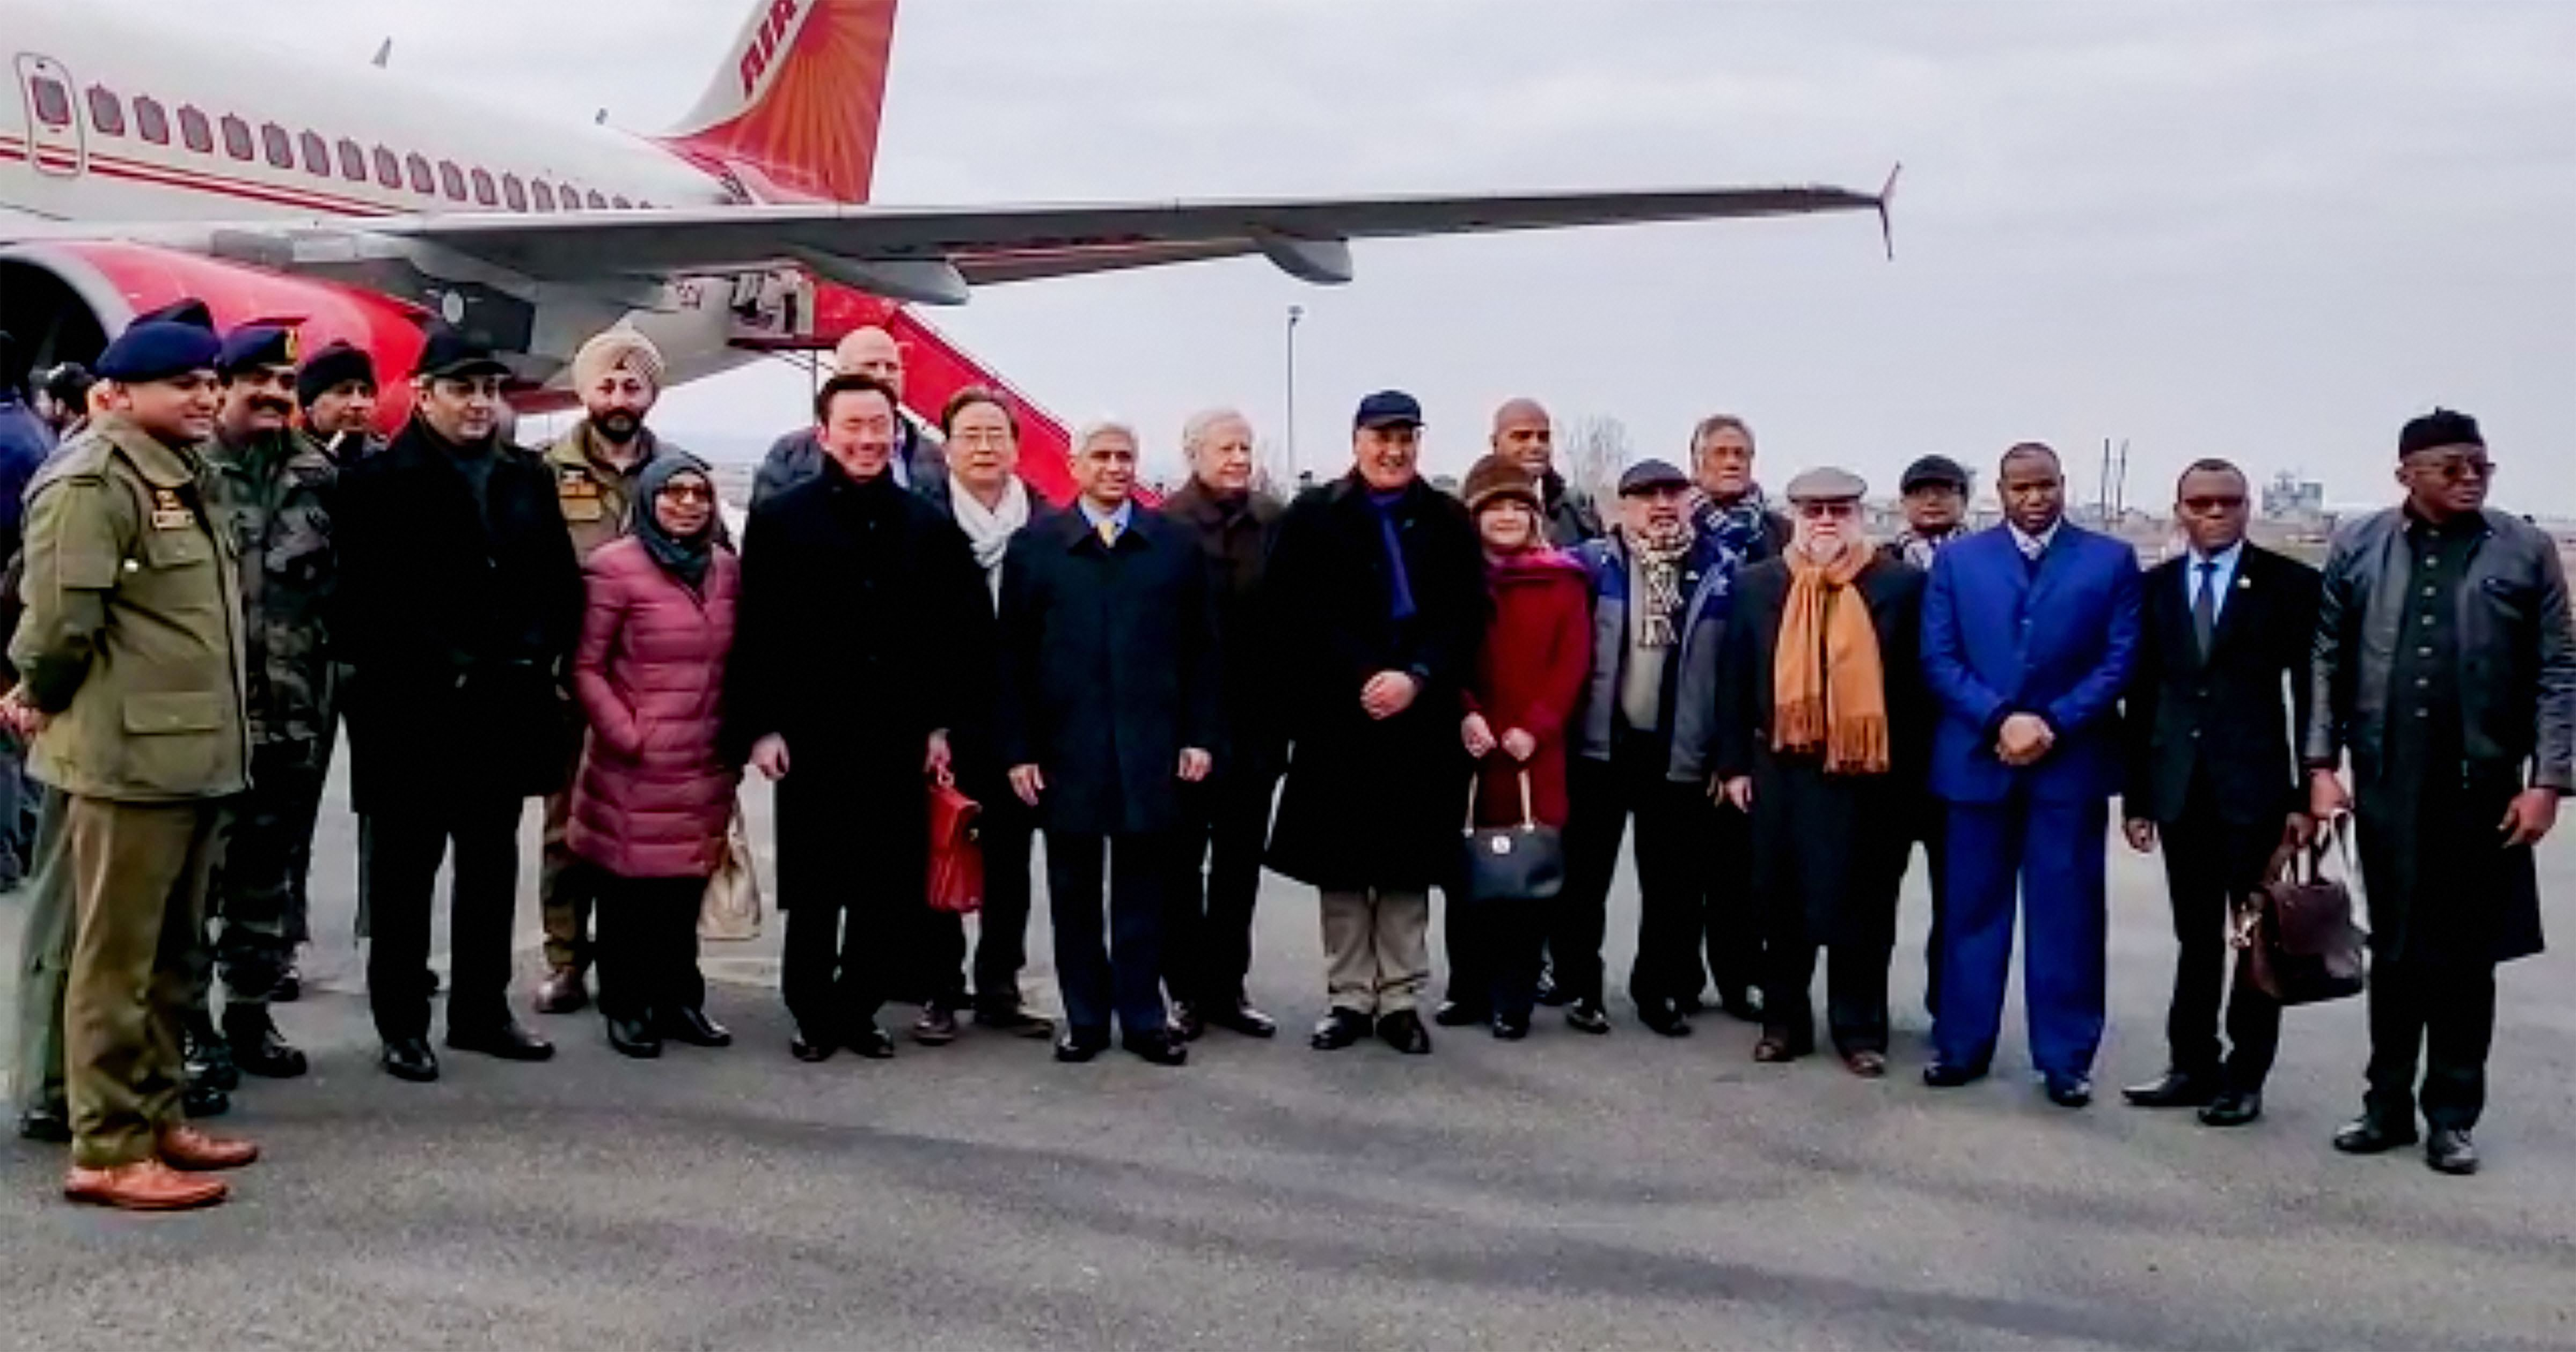 US envoy to India Kenneth I. Juster and diplomats from other countries on their arrival at the airport in Srinagar, Thursday, January 9, 2020.